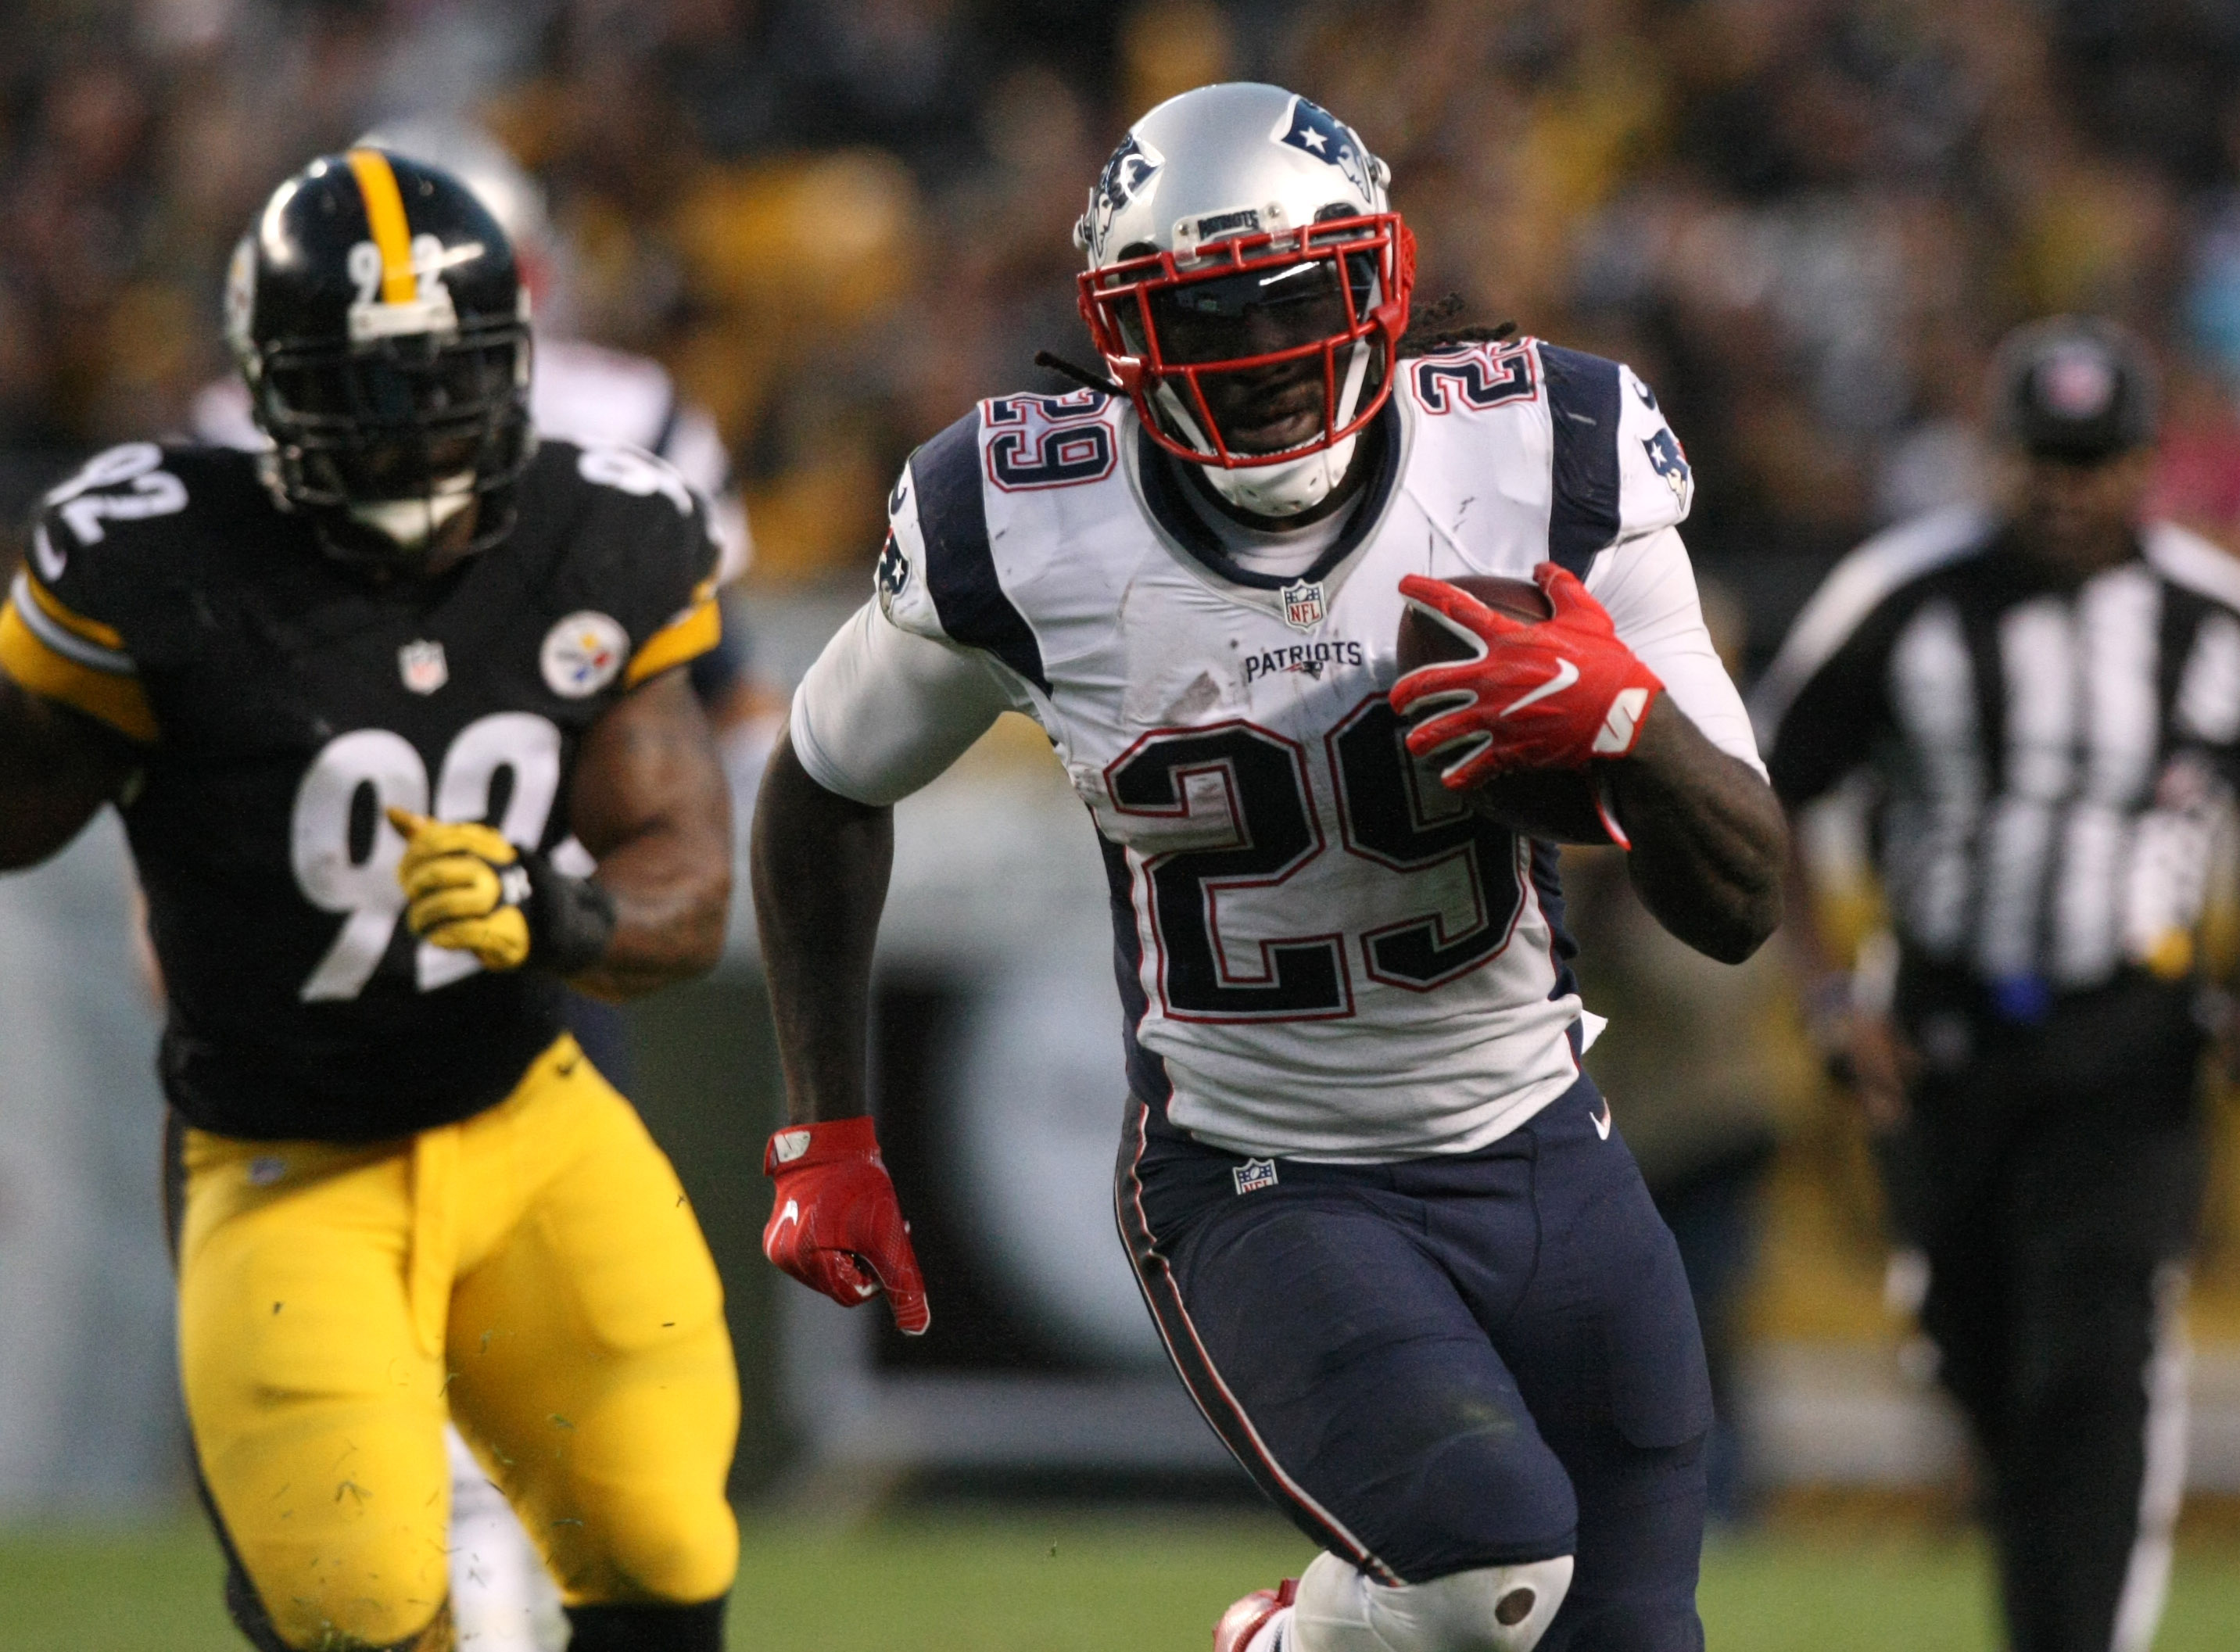 9629235-nfl-new-england-patriots-at-pittsburgh-steelers